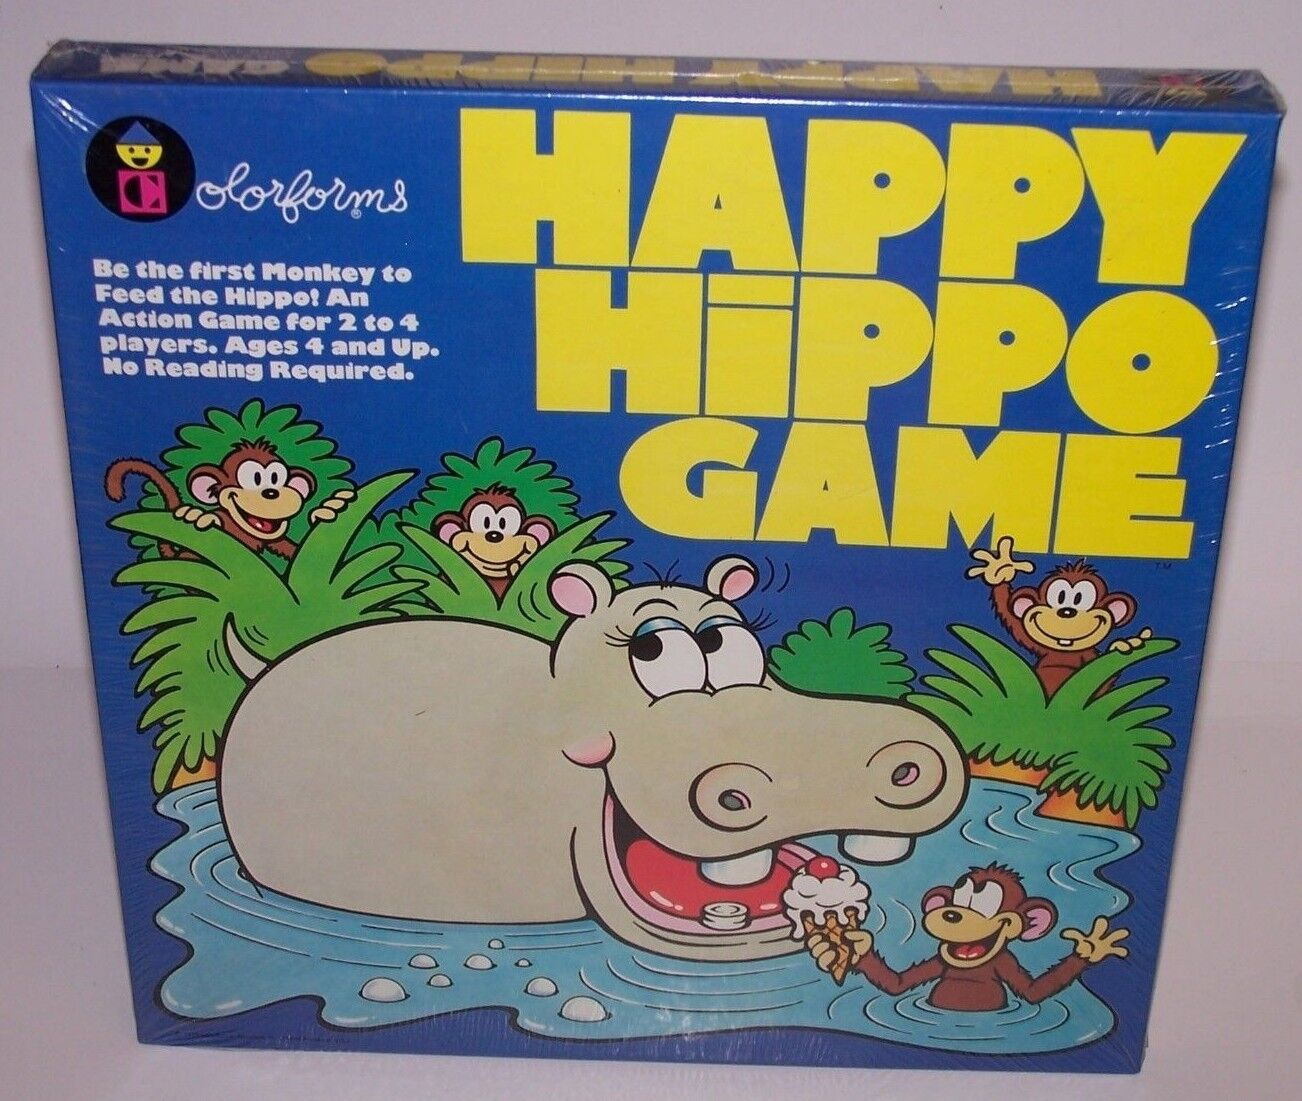 Happy Hippo Game colorforms First Monkey to Feed the Hippo Sealed